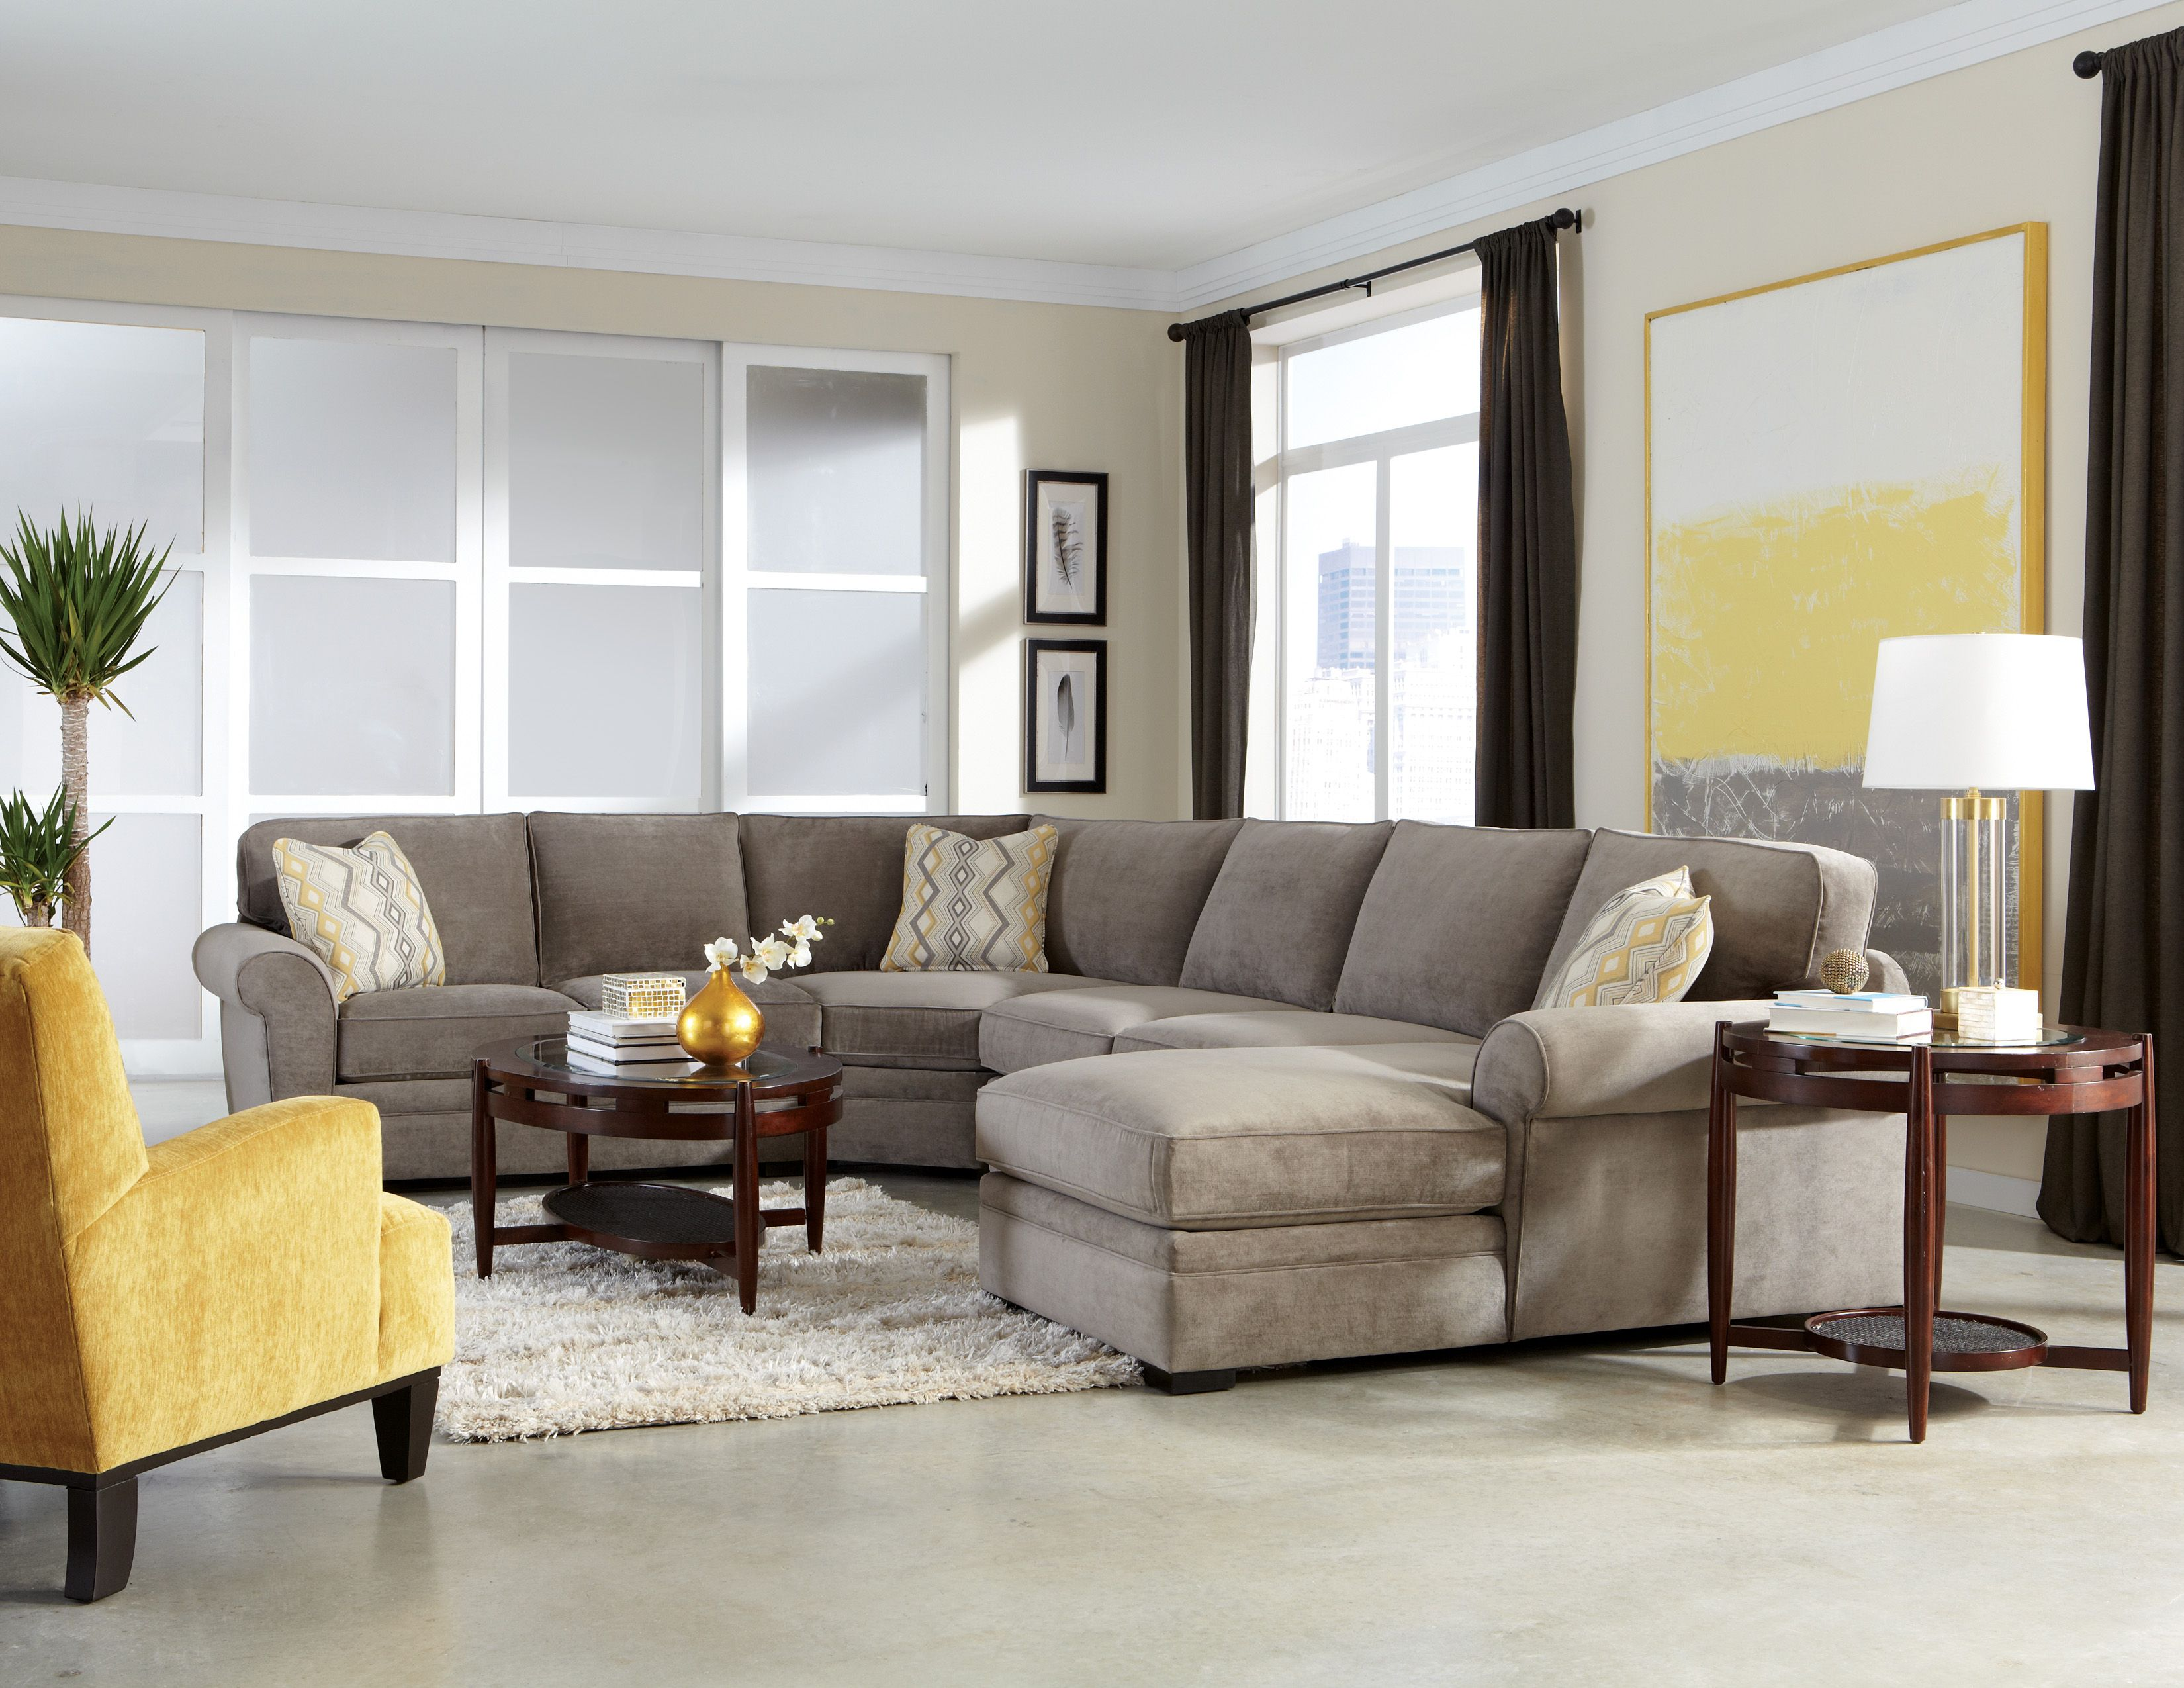 "Orion"" Collection Gray Upholstered 4 piece Sectional"